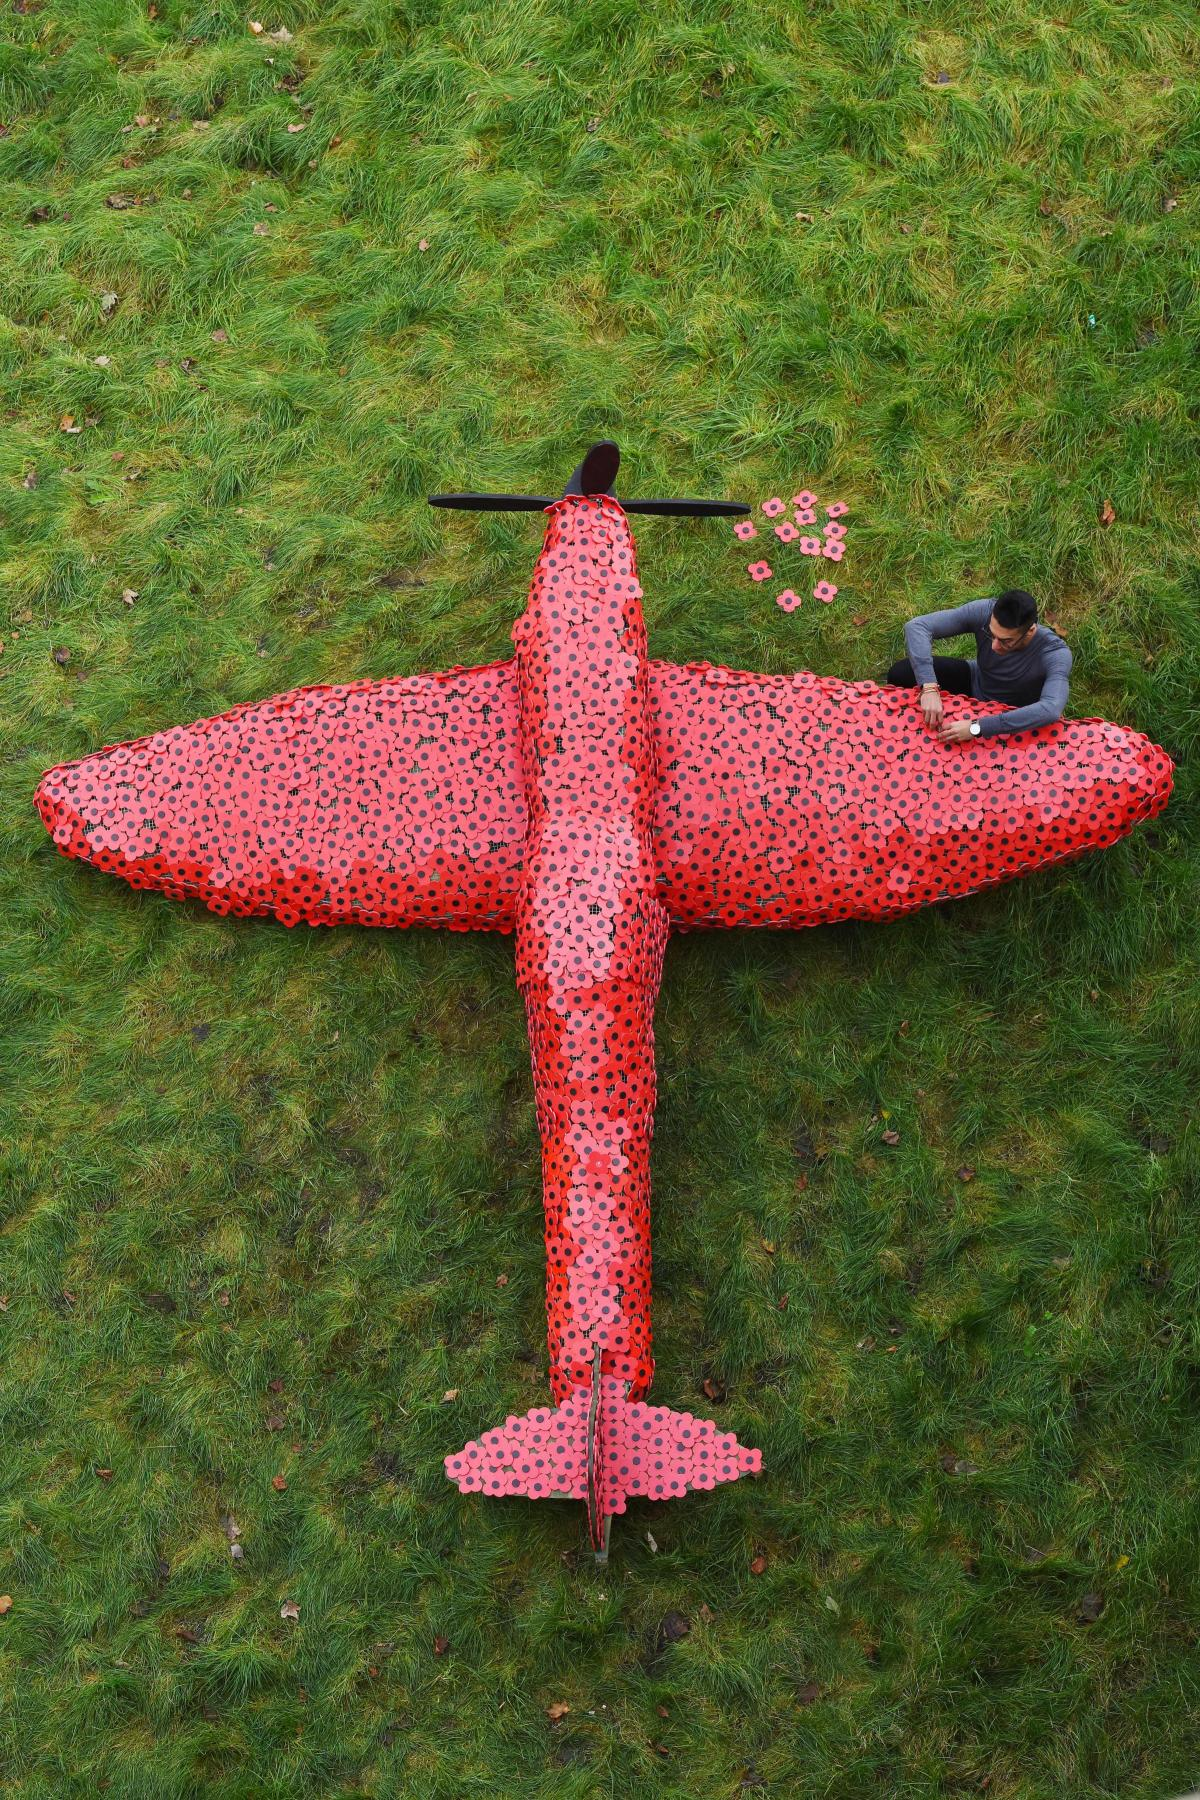 A full size spit fire installation covered in poppies for remembrance day